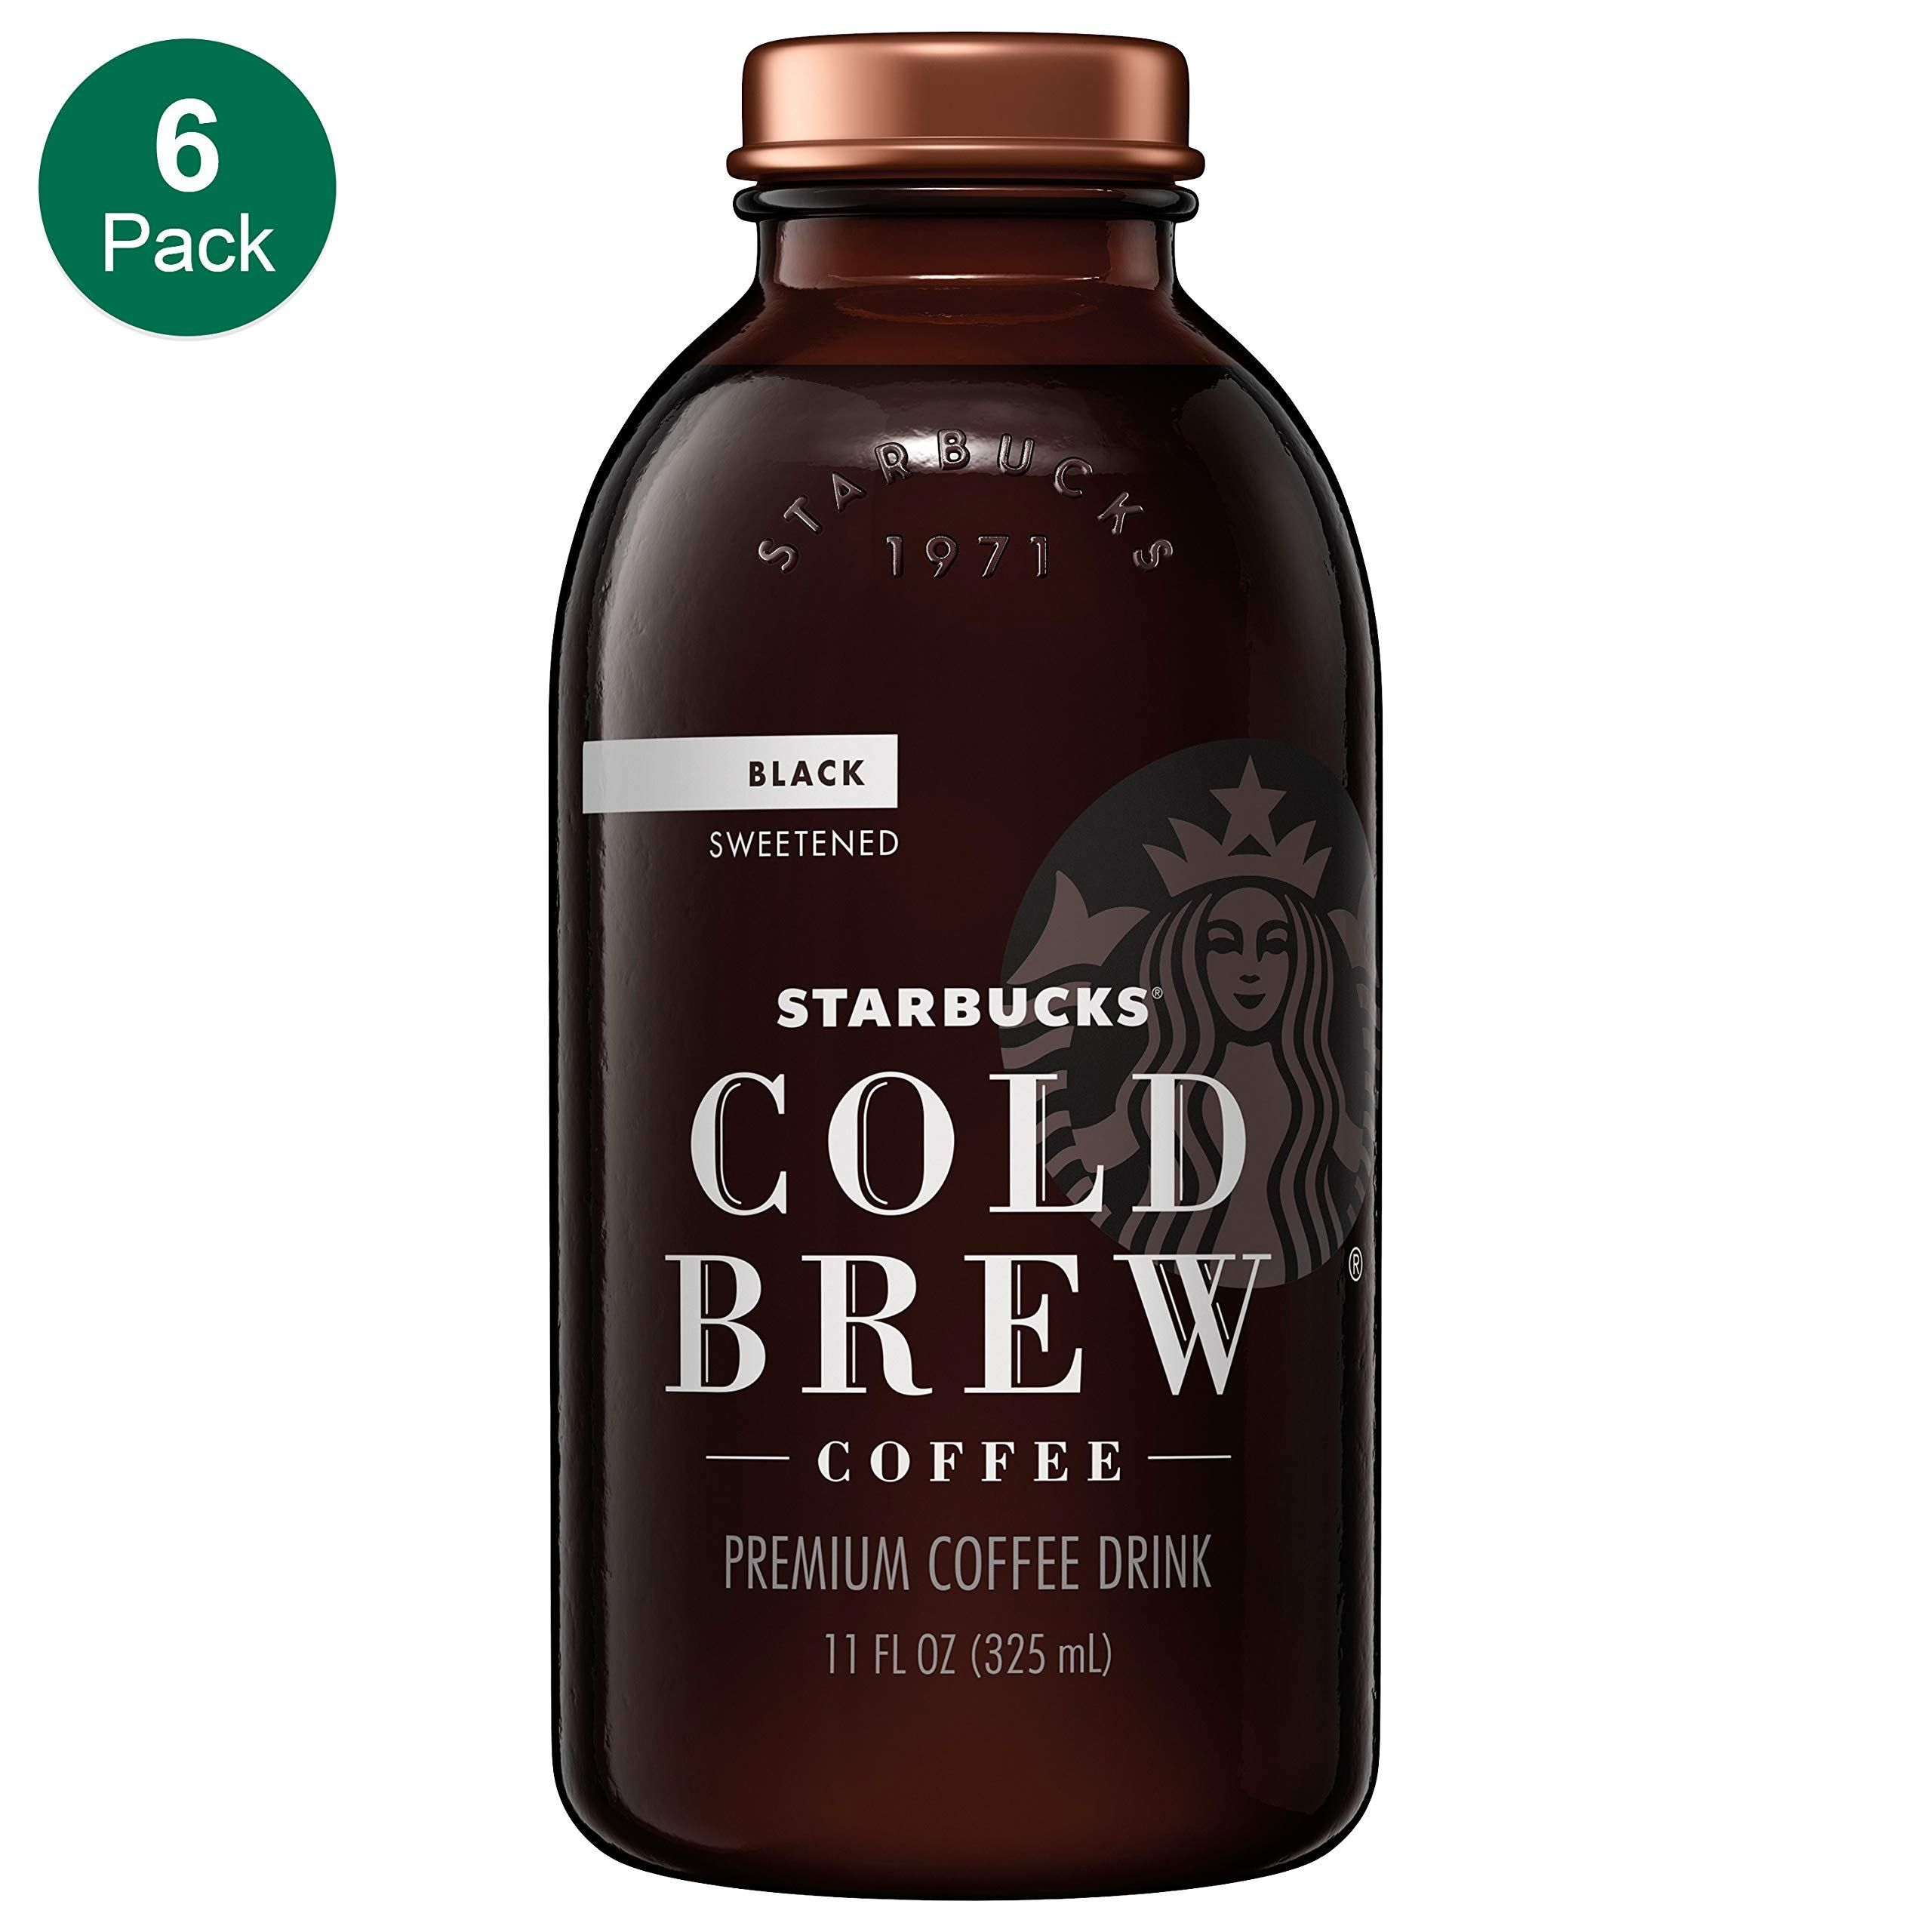 Starbucks Cold Brew Coffee, Black Unsweetened, 11 oz Glass Bottles, 6 Count | Coffee brewing ...